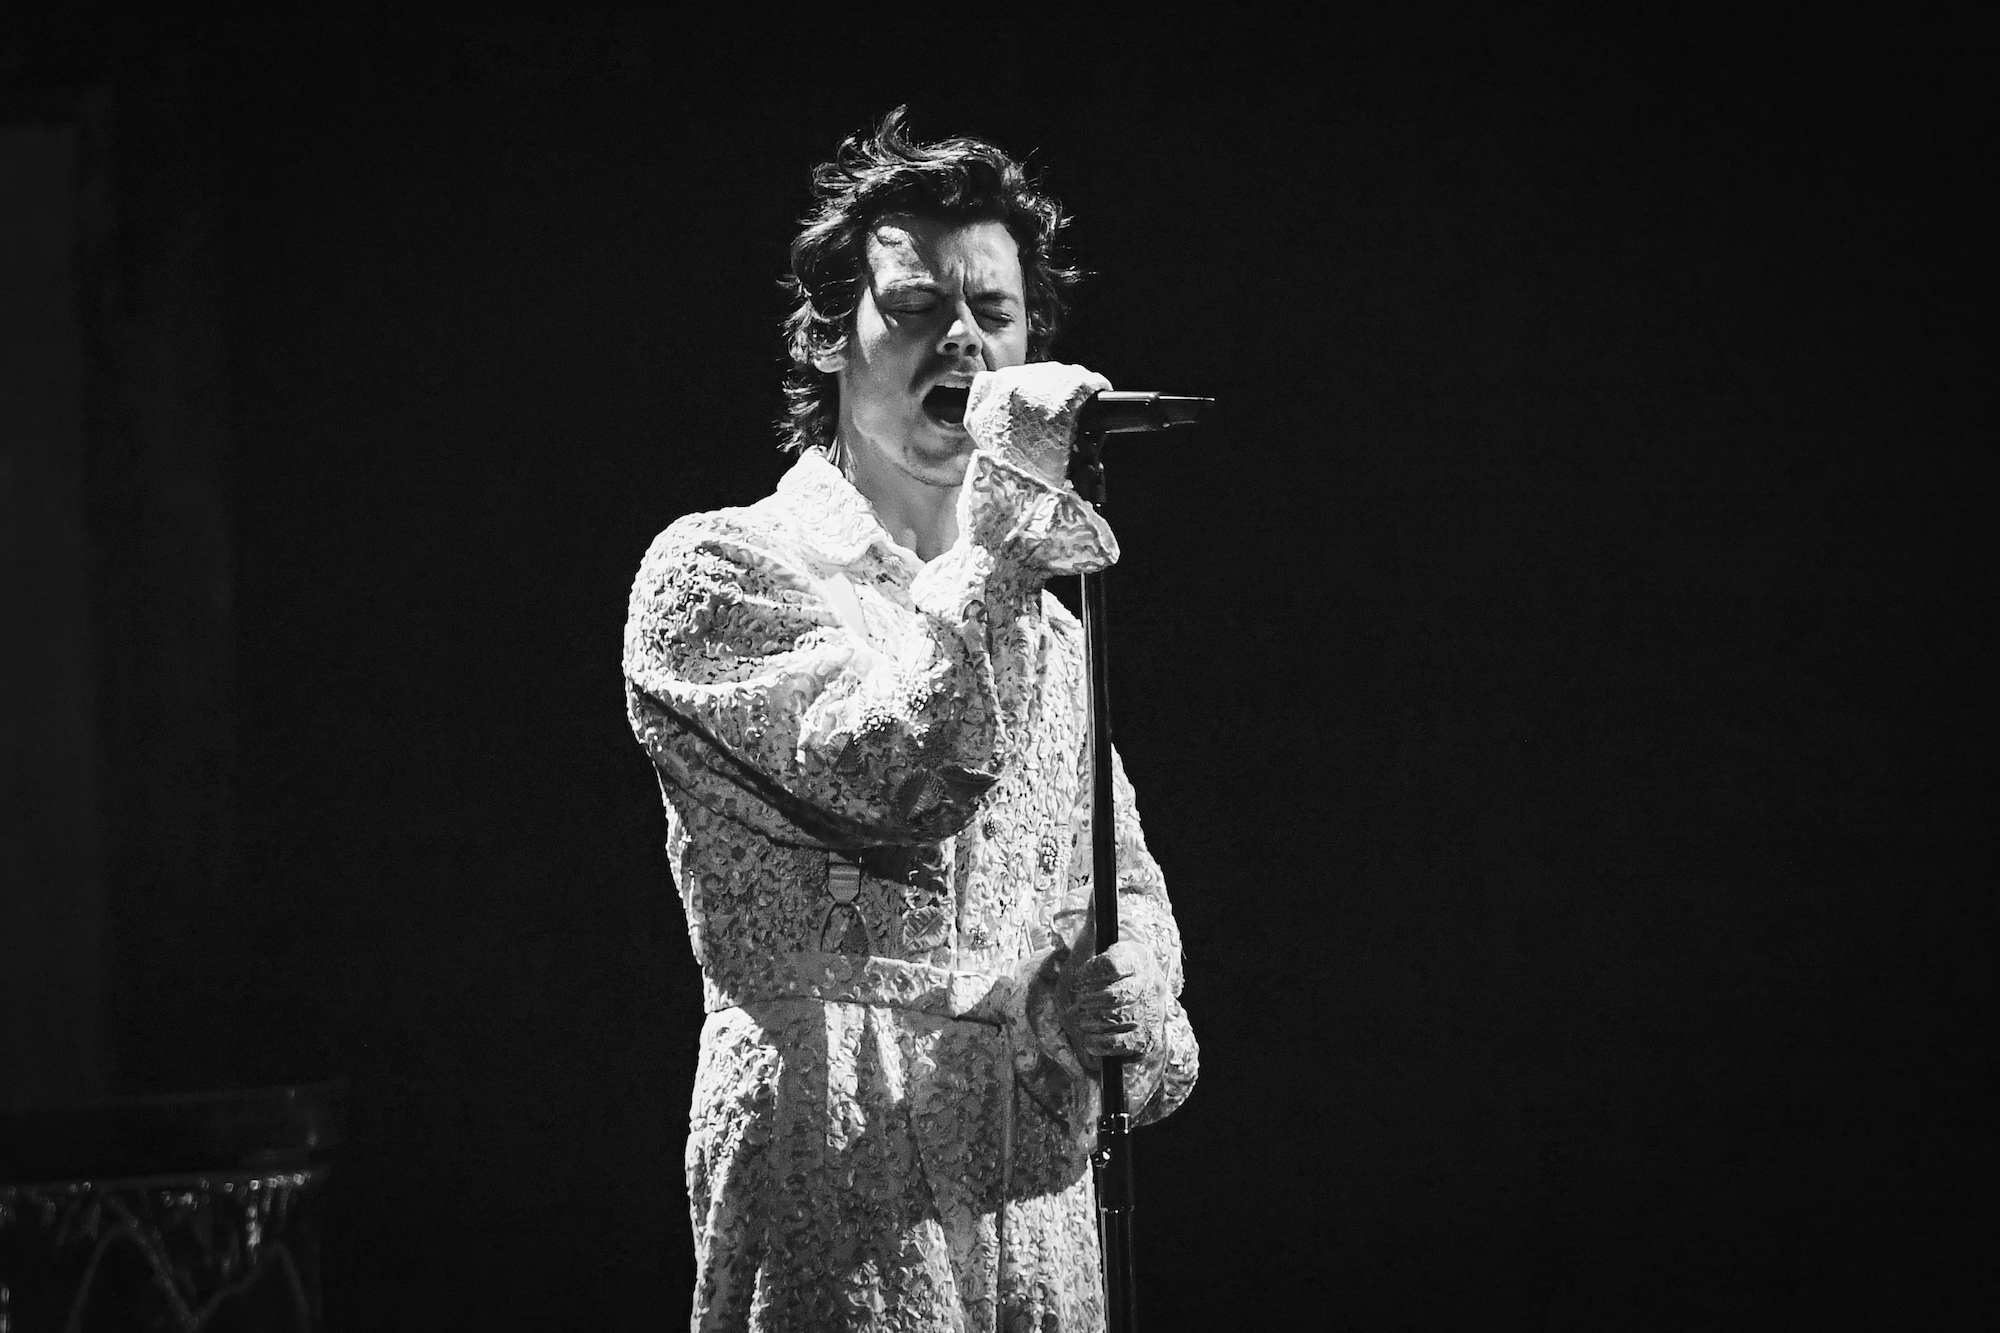 Harry Styles singing at The BRIT Awards 2020 at The O2 Arena on February 18, 2020